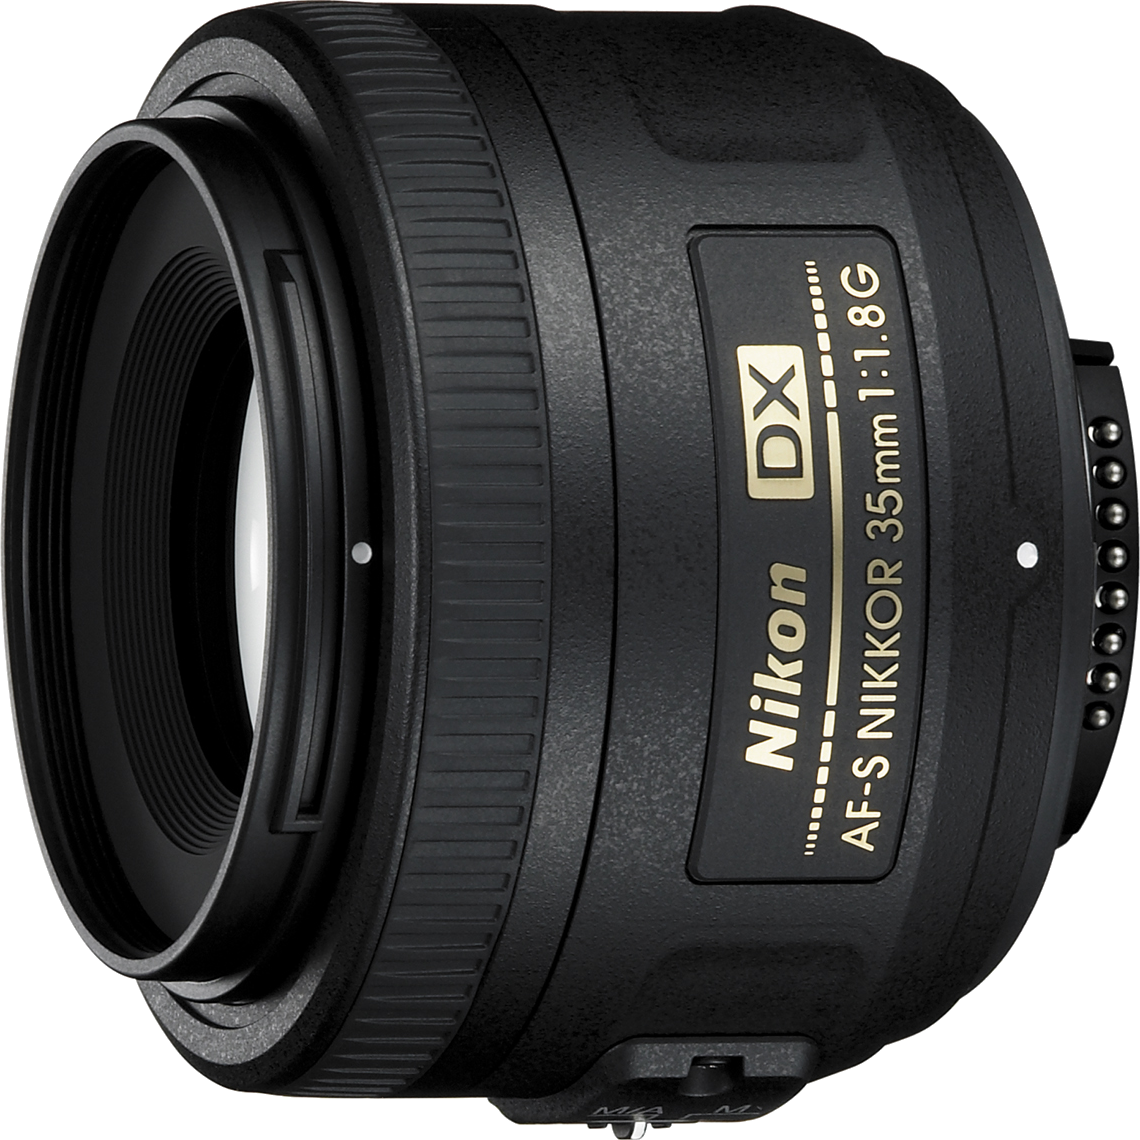 A standard prime, the Nikon 35mm f/1.8 gives prime quality sharpness in a light, compact, and affordable package.